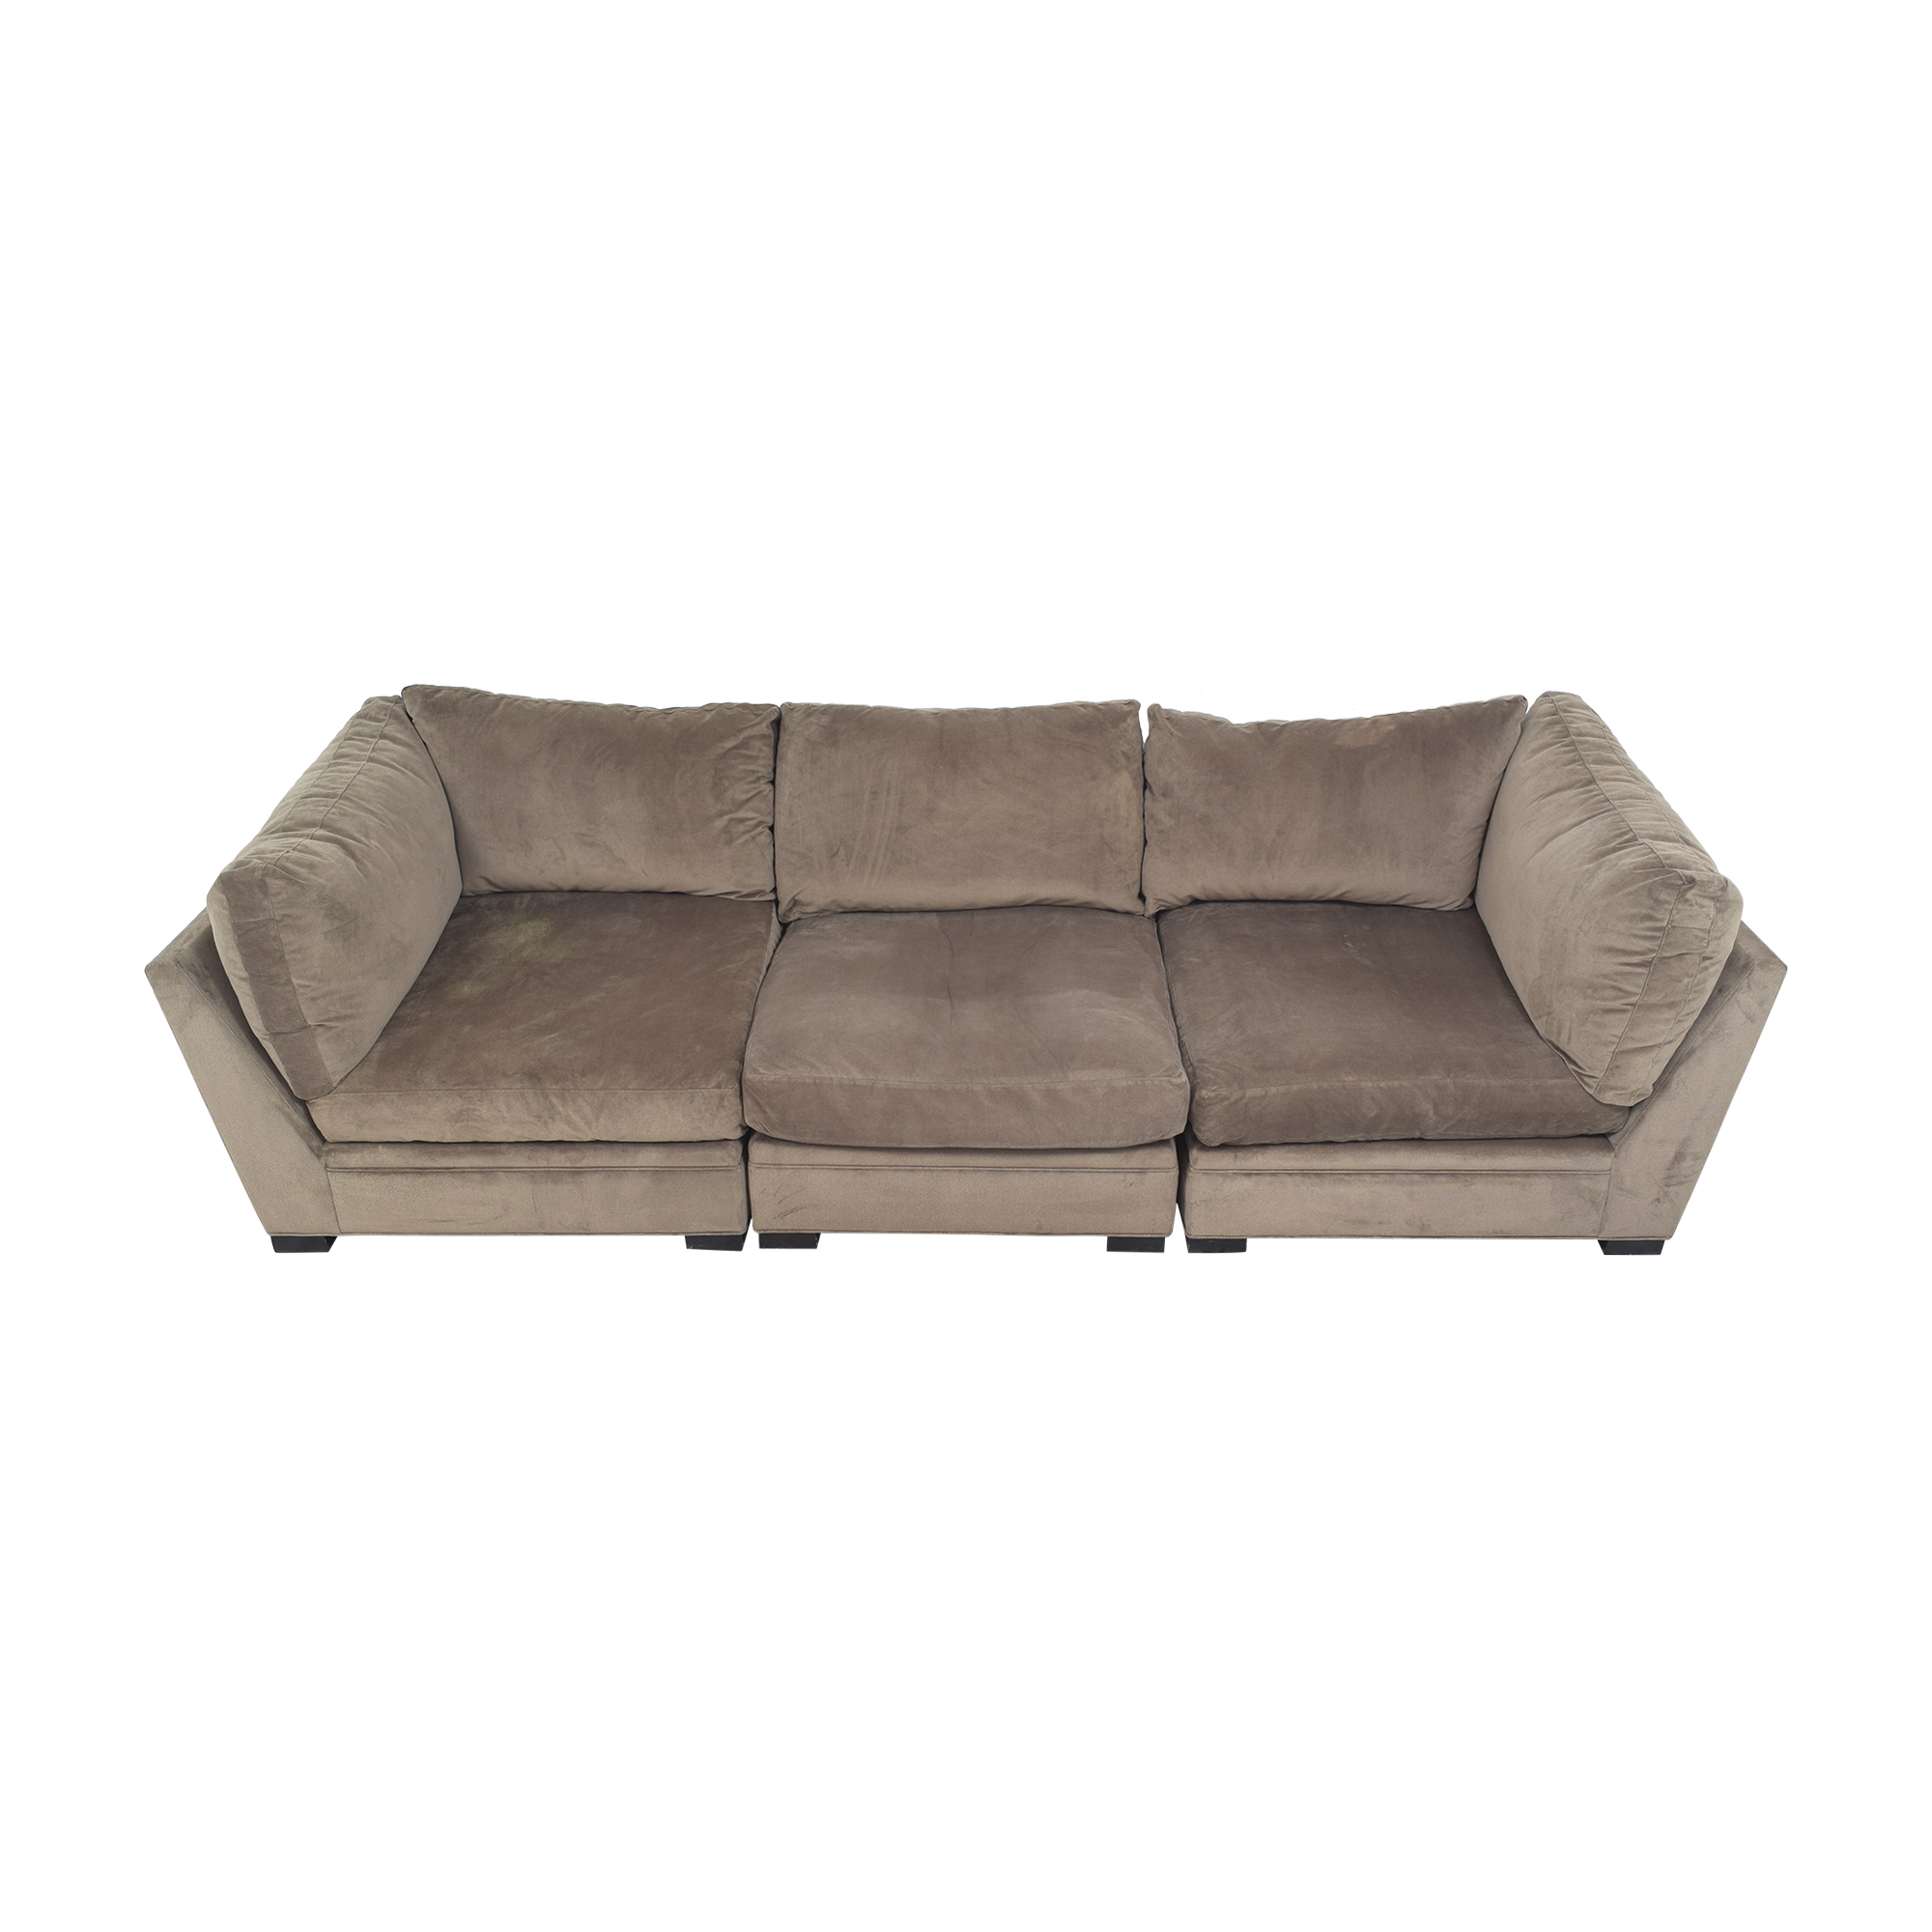 Raymour & Flanigan Raymour & Flanigan Sectional Sofa by Cindy Crawford Home on sale